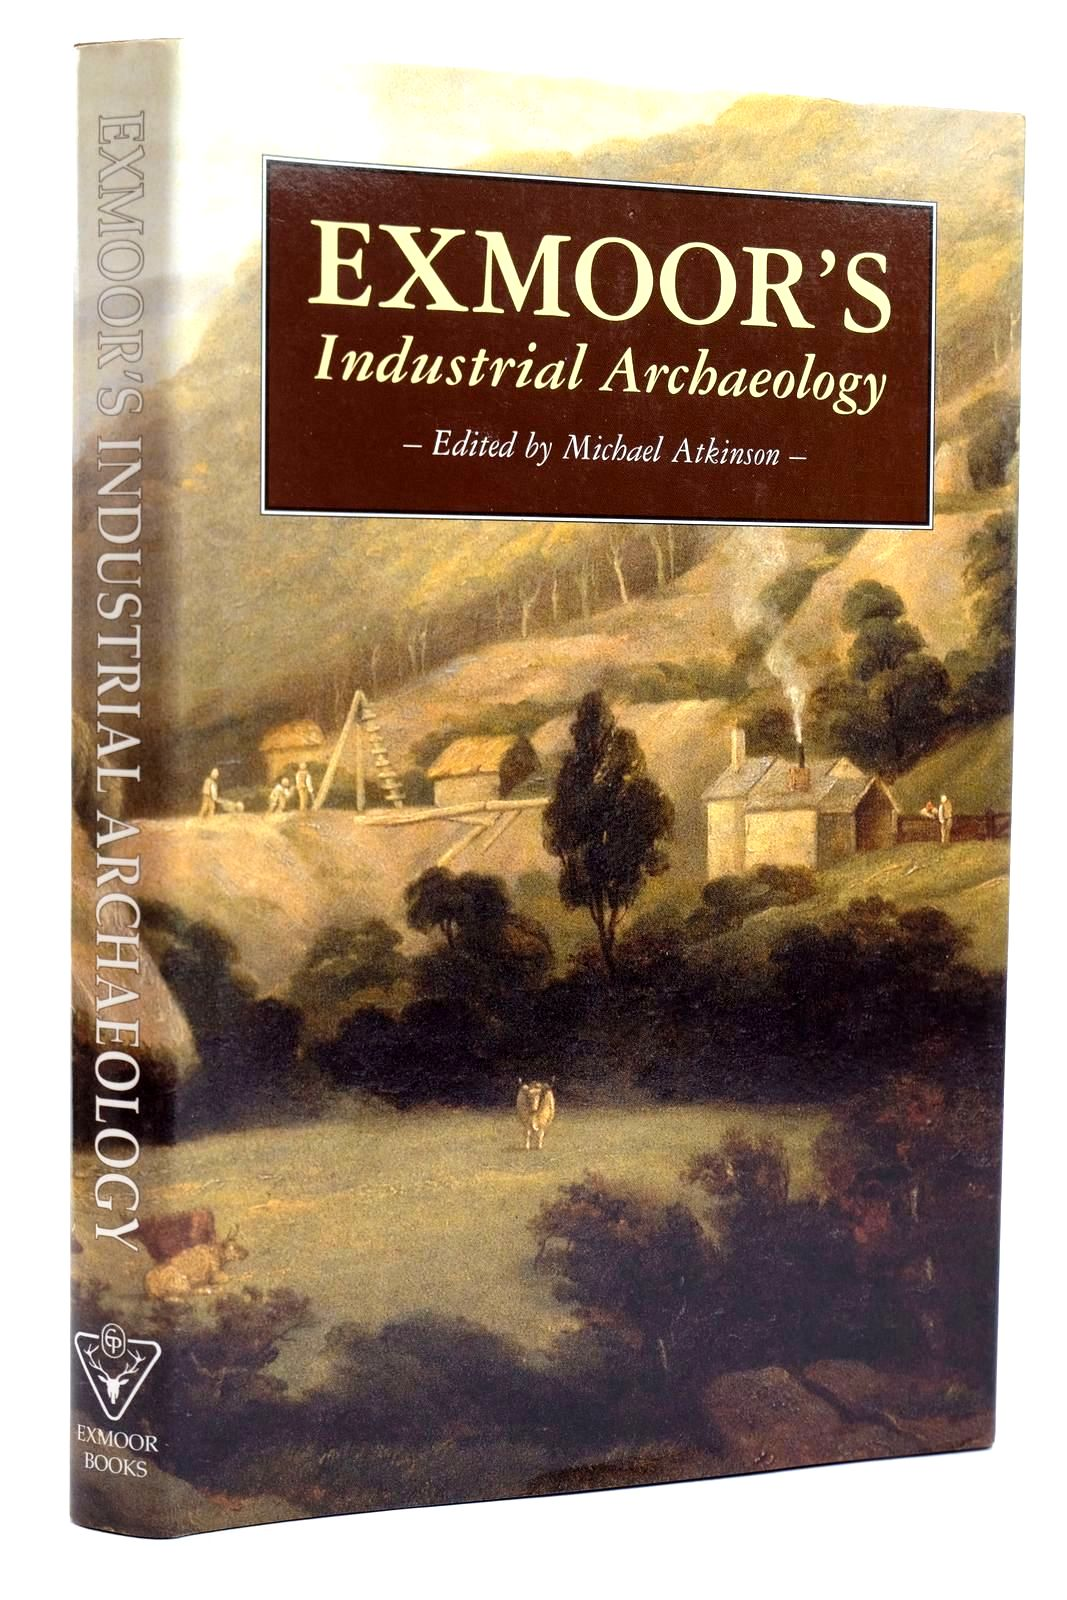 Photo of EXMOOR'S INDUSTRIAL ARCHAEOLOGY written by Atkinson, Michael published by Exmoor Books (STOCK CODE: 2131978)  for sale by Stella & Rose's Books